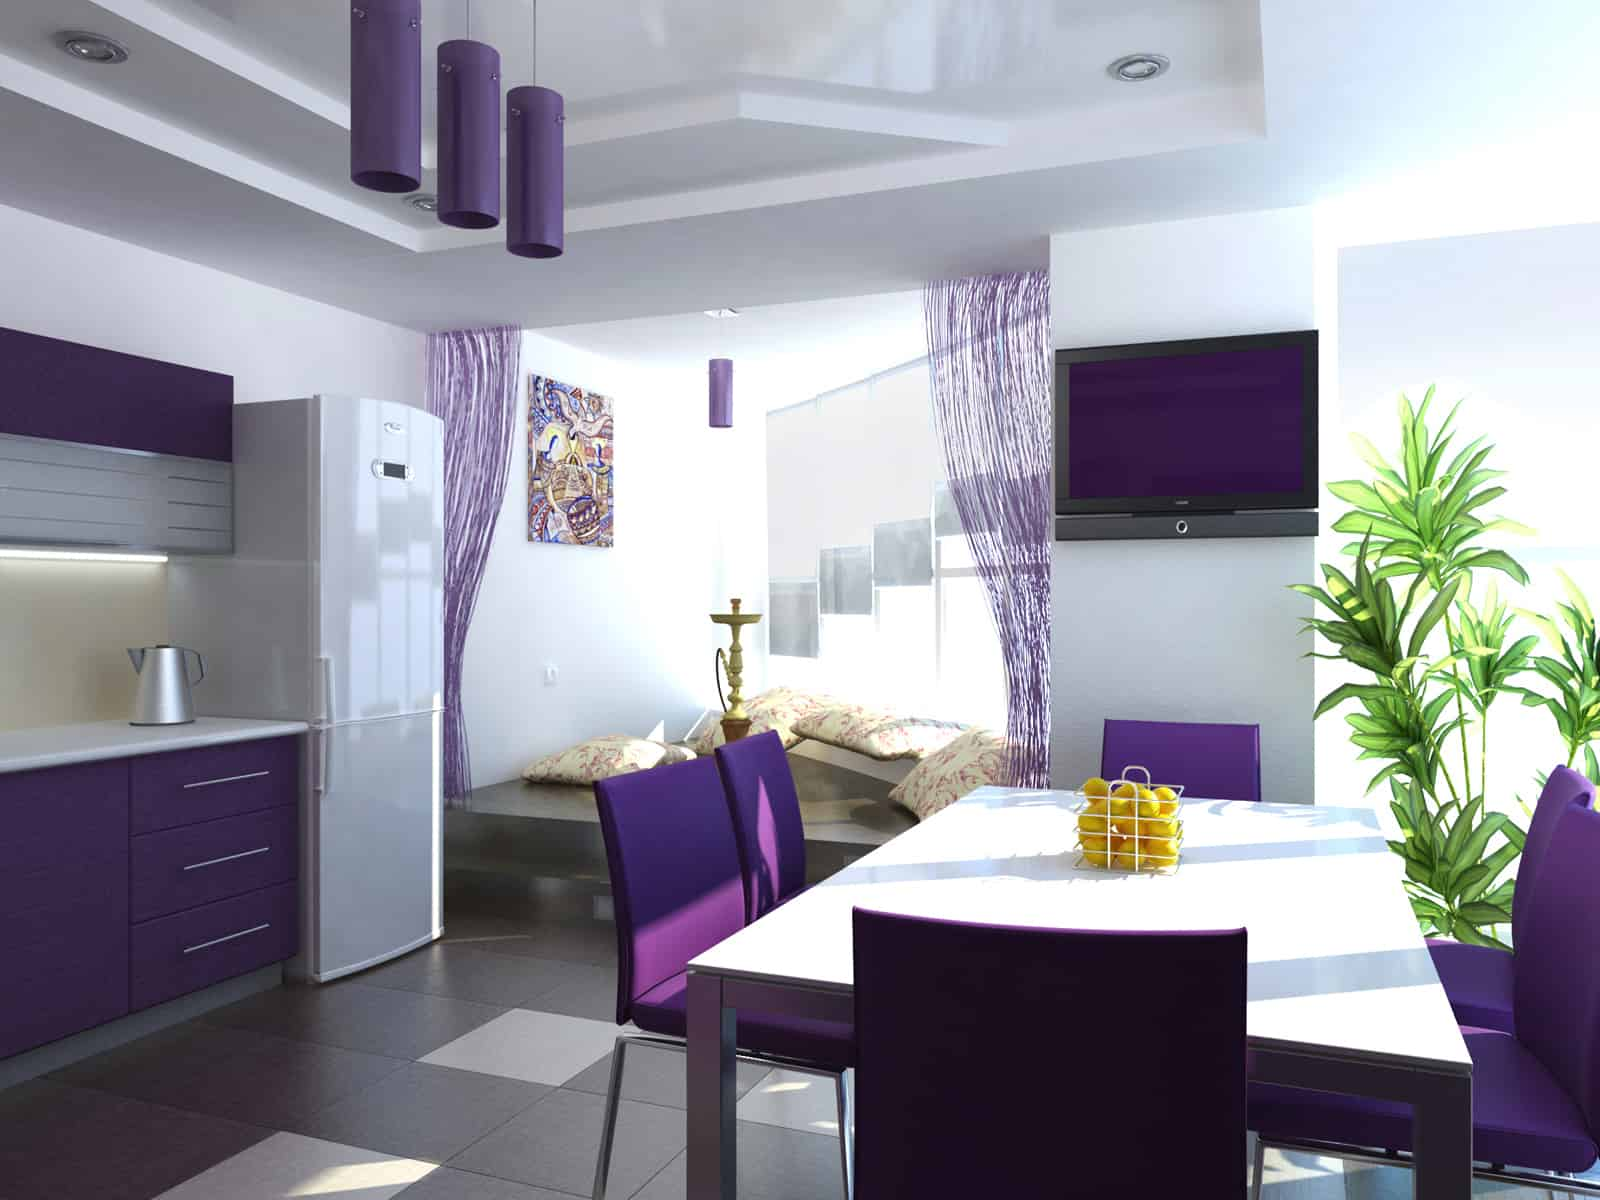 Interior design trends 2017 purple kitchen house interior - What are the latest trends in home decorating image ...